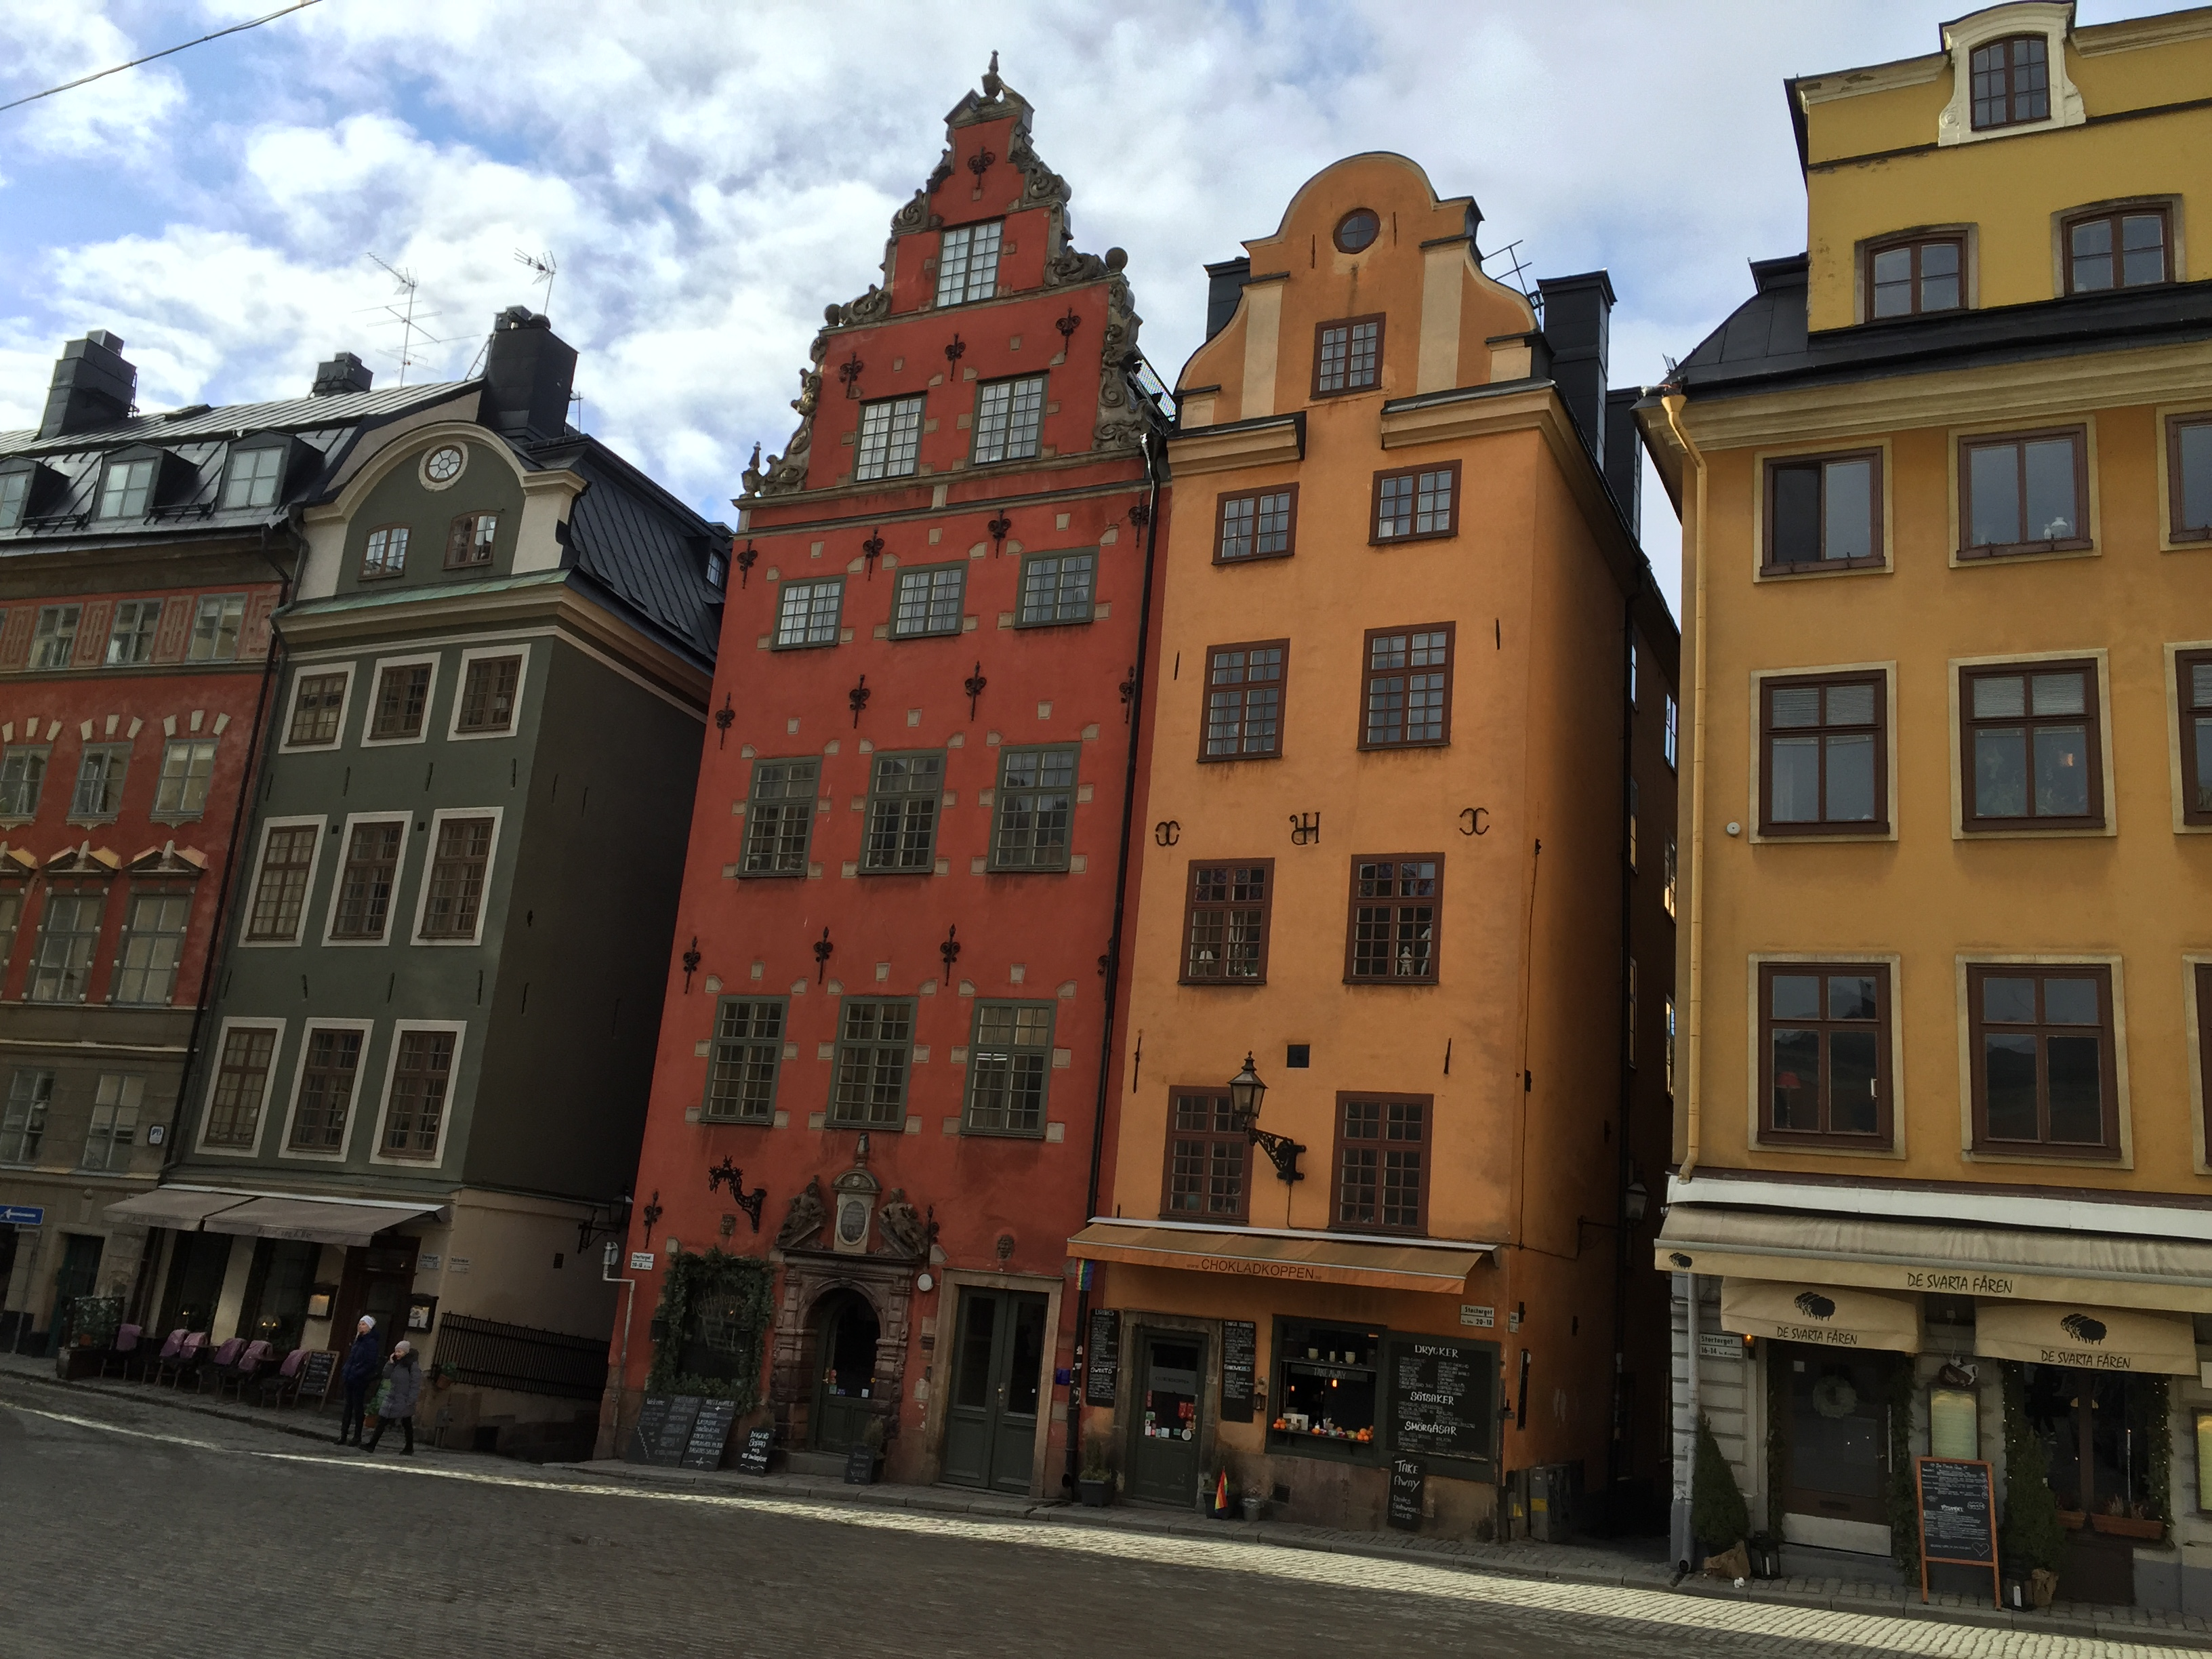 36 hours in Stockhom